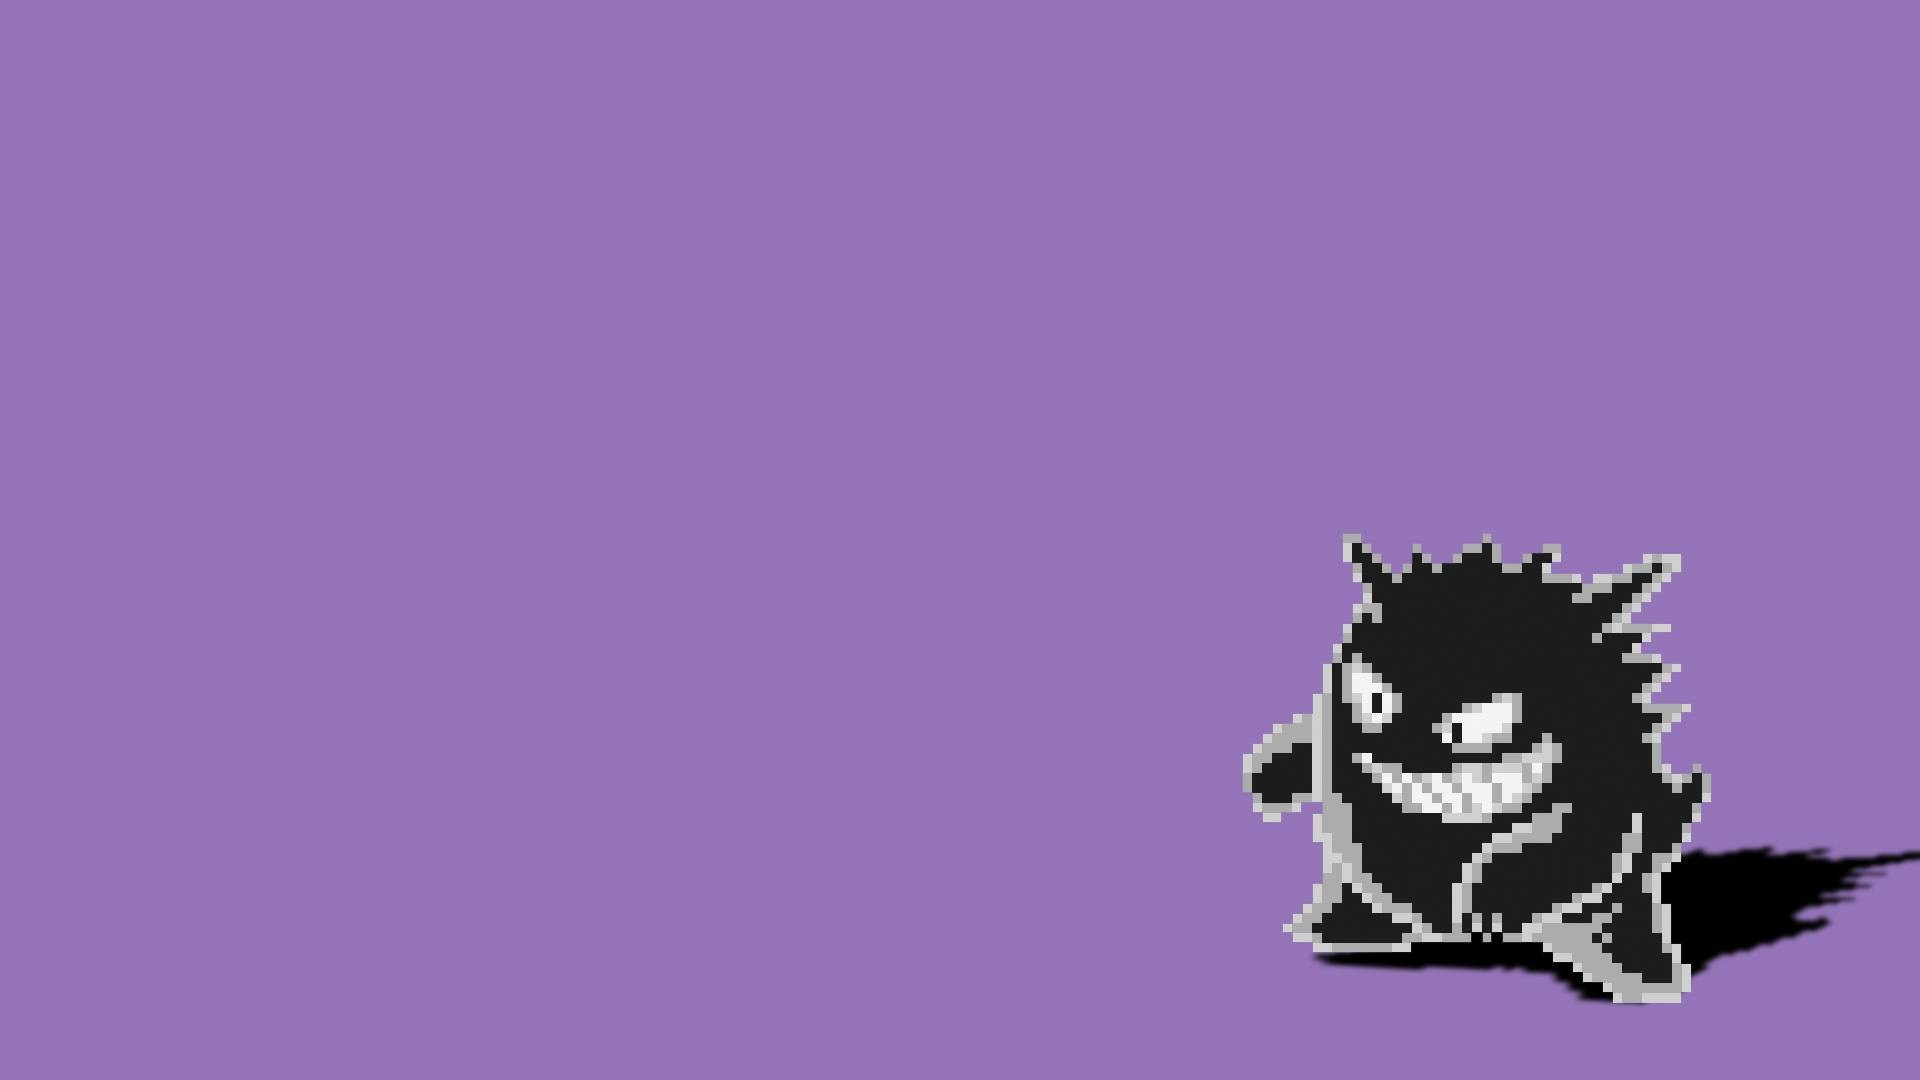 1920x1080 pokemon-gengar - Pokemon Wallpaper